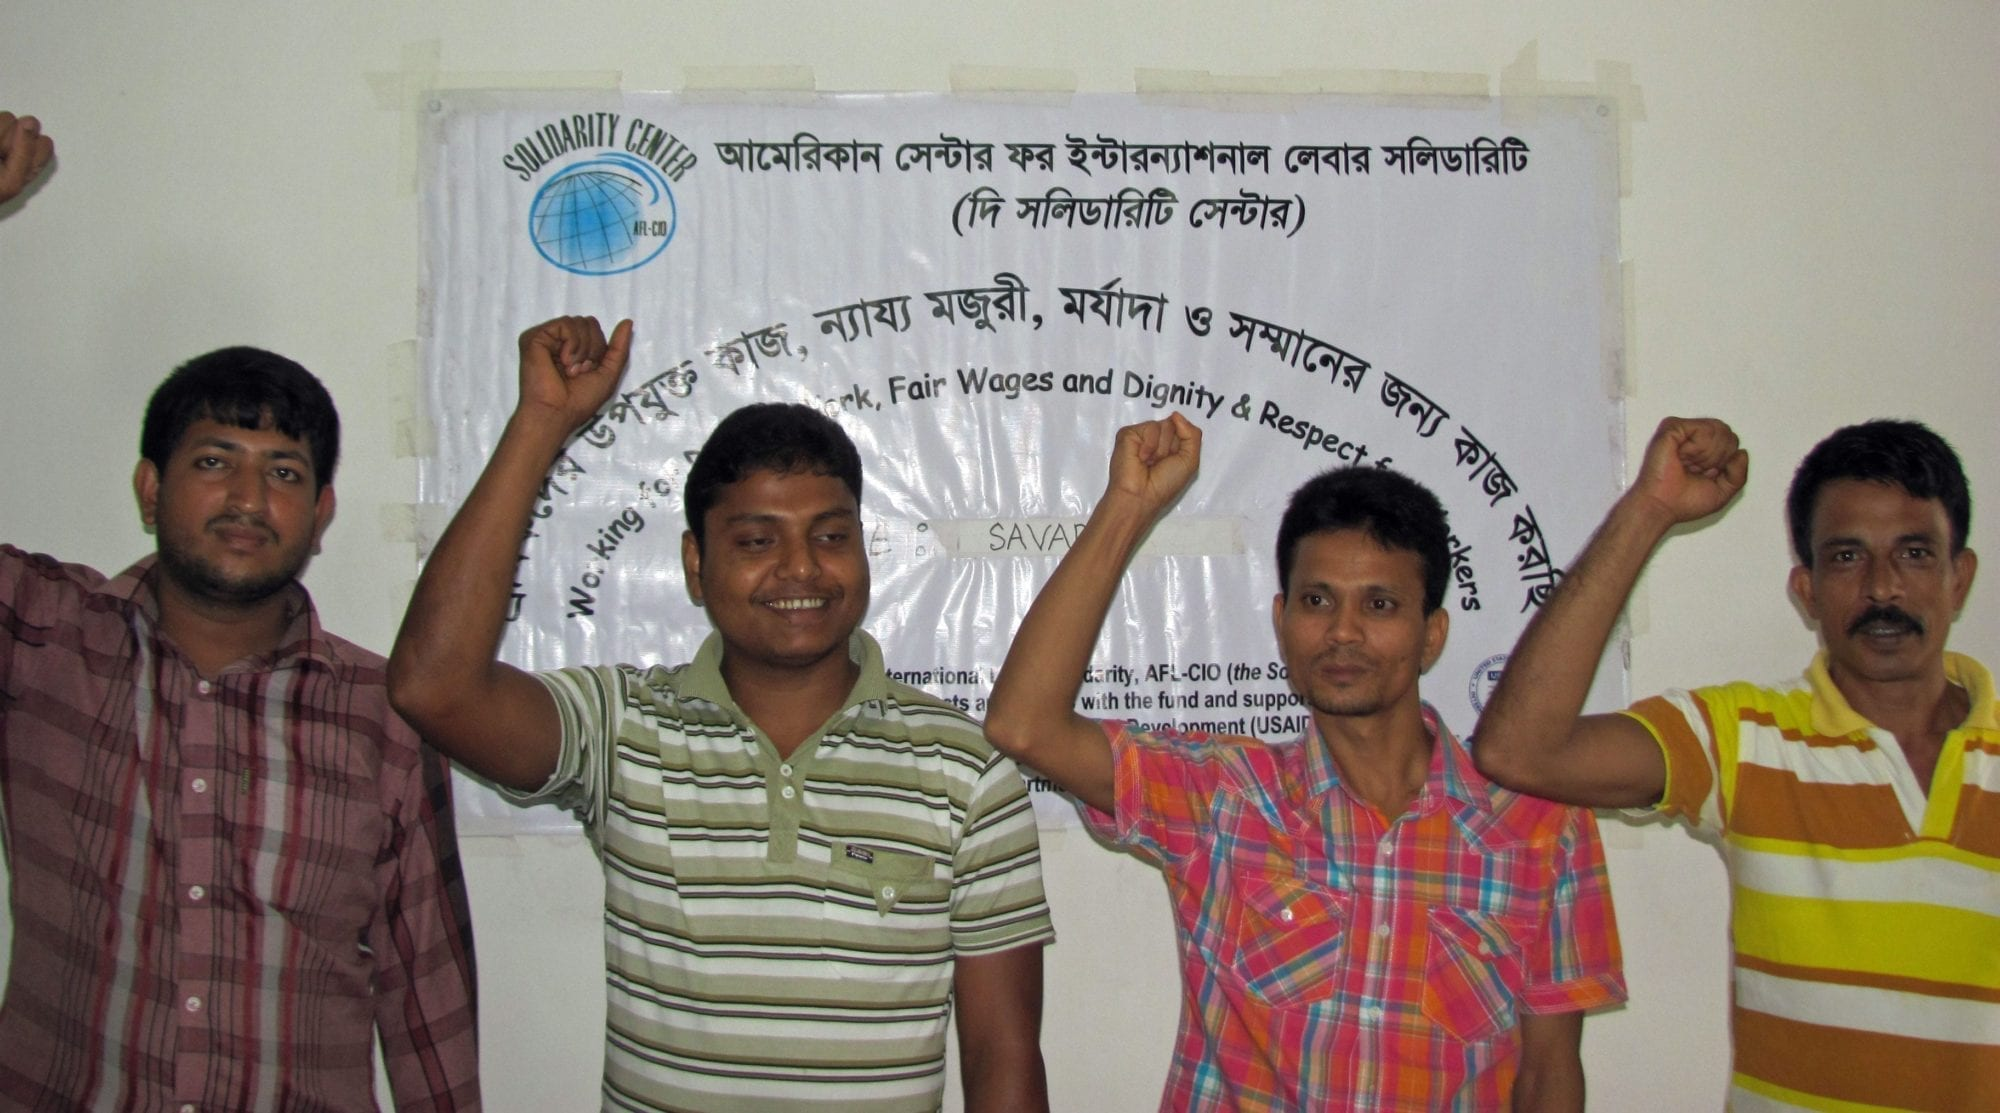 Bangladesh Workers Get Justice Via Workers' Associations